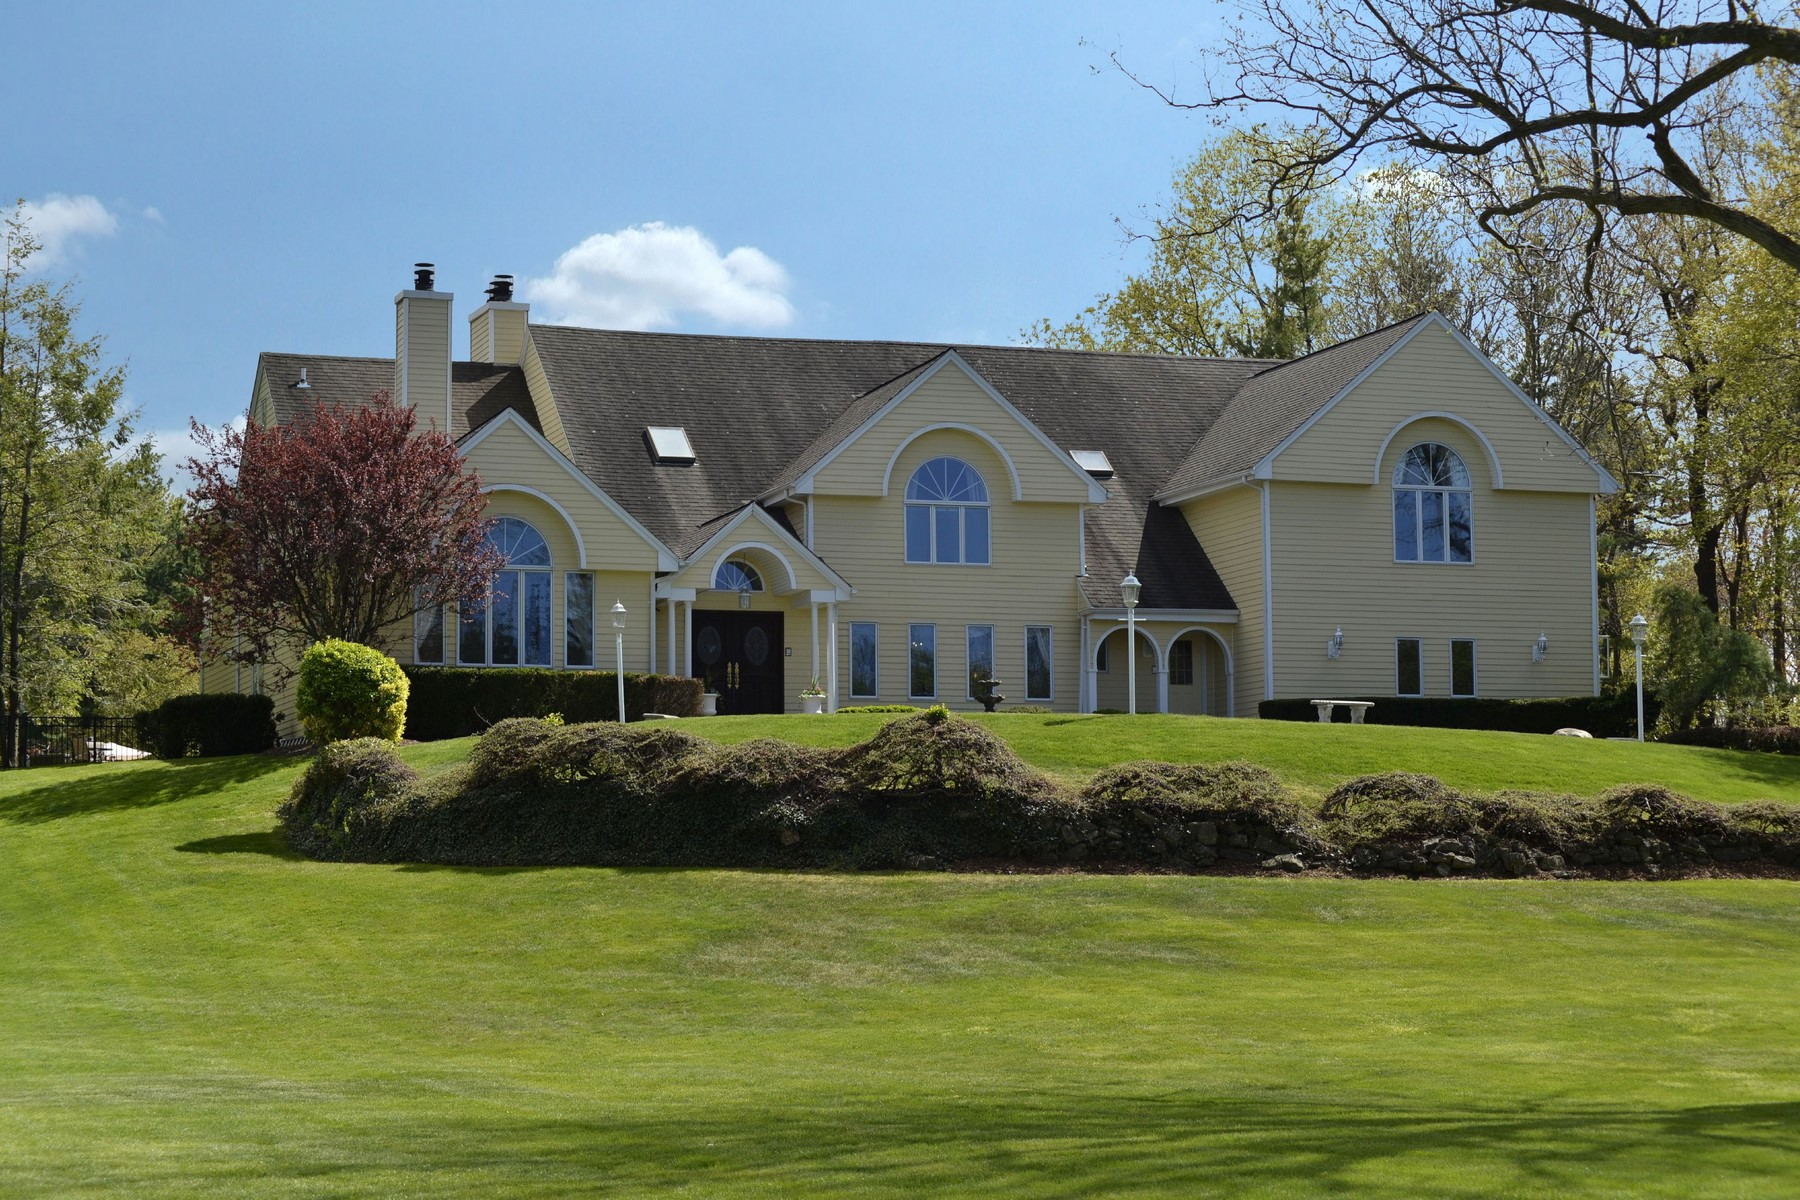 Single Family Home for Sale at Colonial 1 Redmond Ln Oyster Bay Cove, New York, 11771 United States